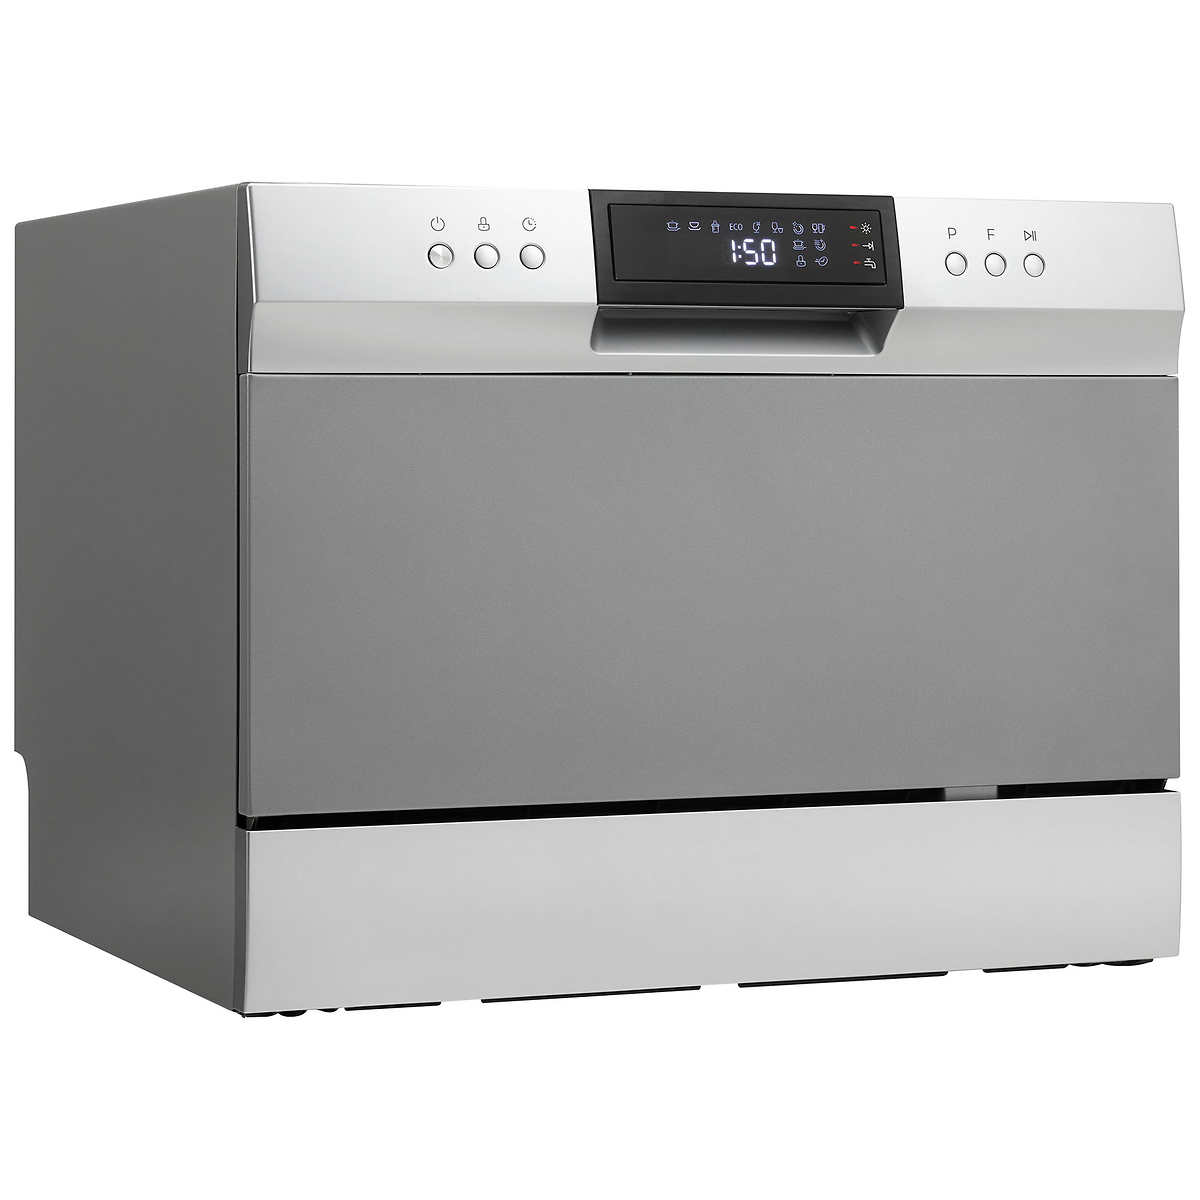 Danby Silver Countertop Dishwasher